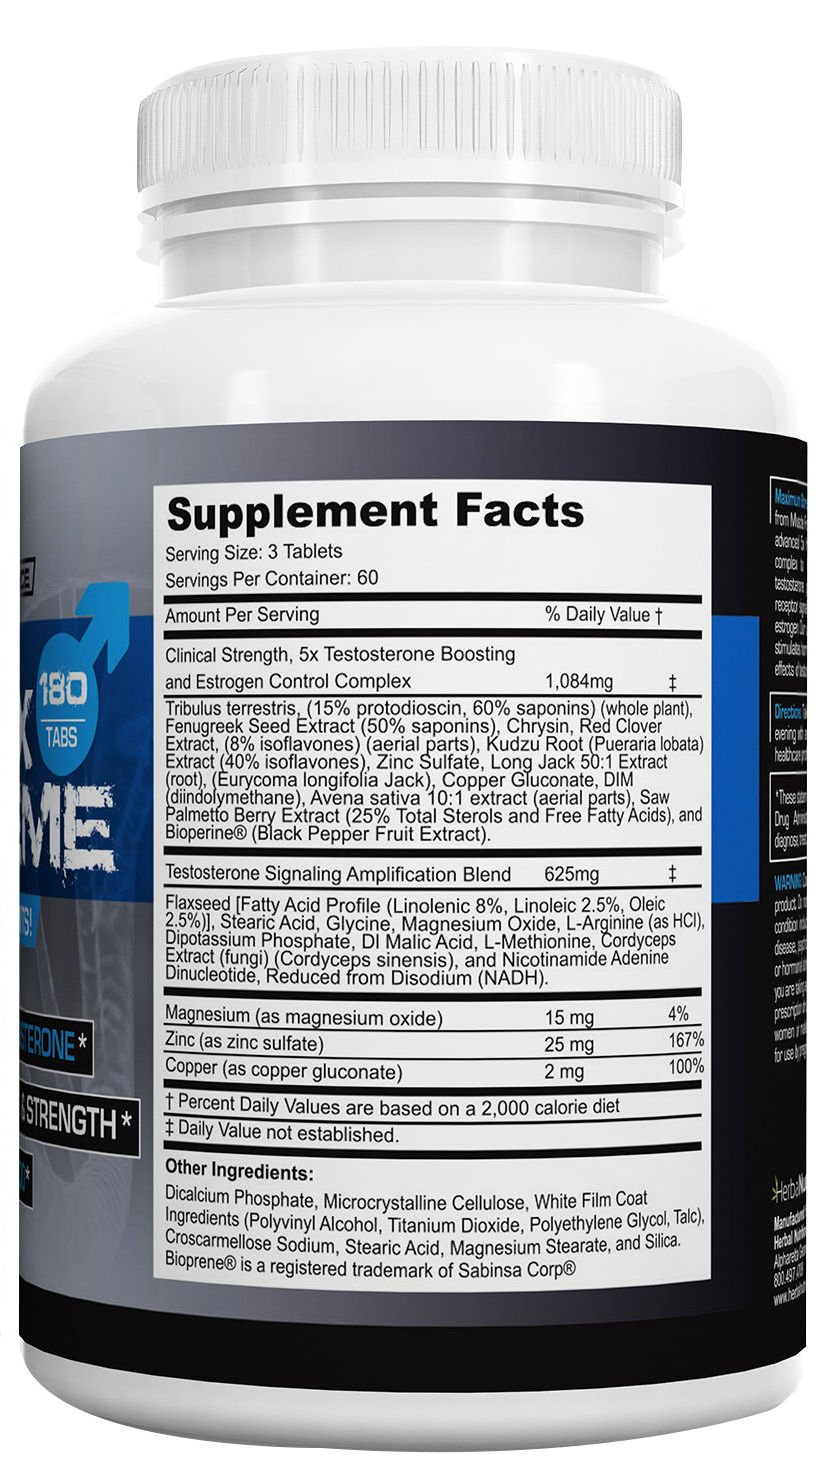 T5X Extreme Testosterone Booster for Muscle Growth Libido Enhancement Multi-Ingredient Formula, Tribulus, Fenugreek More 2 Bottle Pack, 360 Tablets 2nd Messenger Set, 5x Optimizing Complex